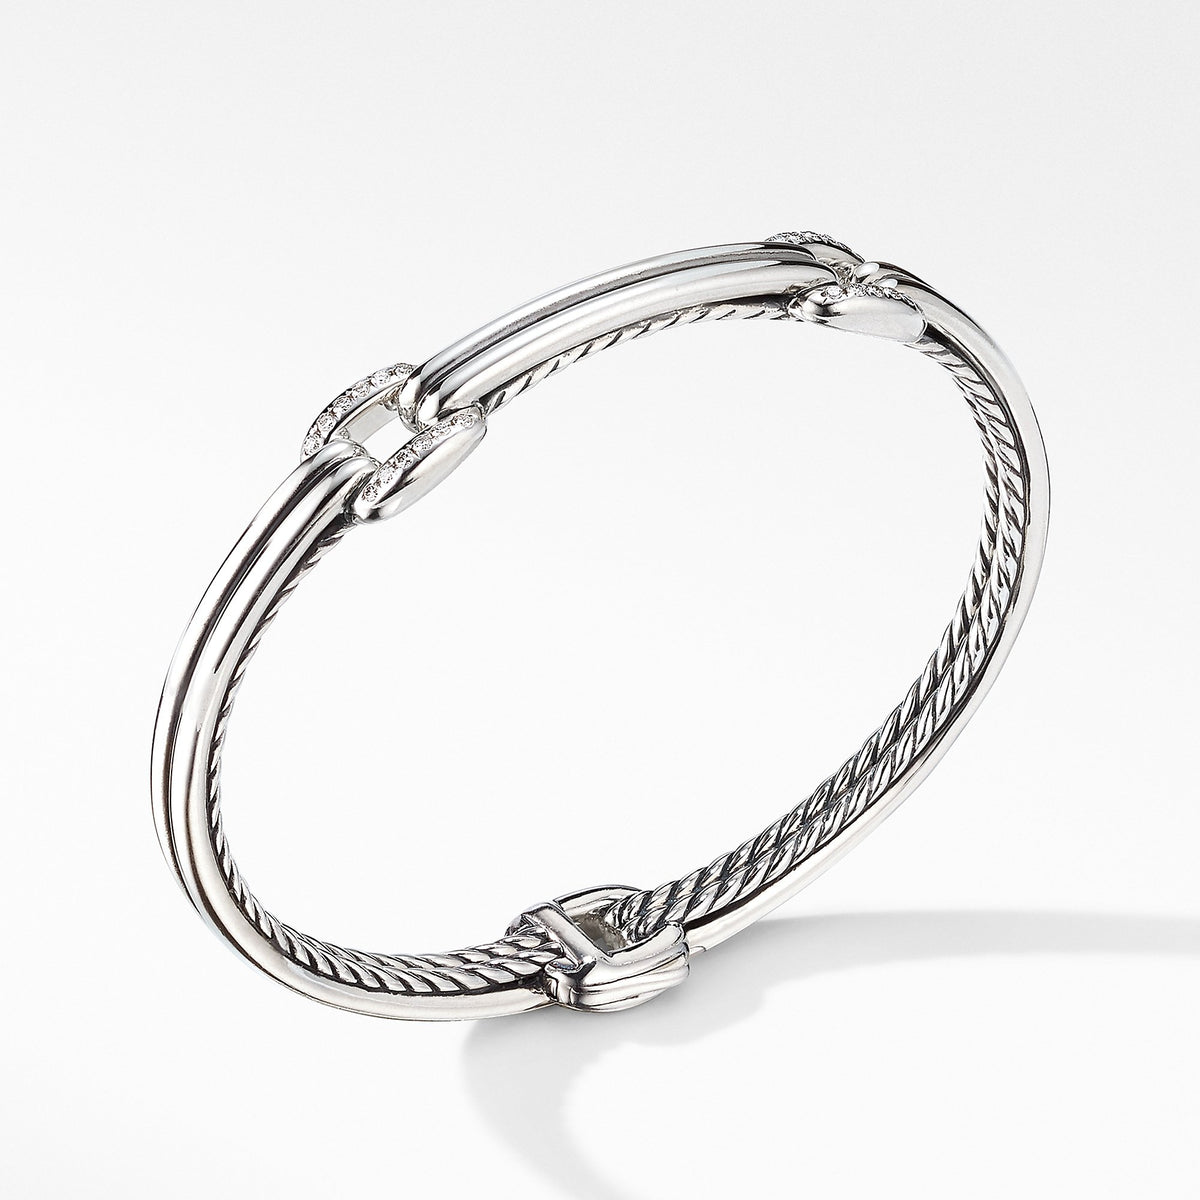 Thoroughbred Double Link Bracelet with Diamonds